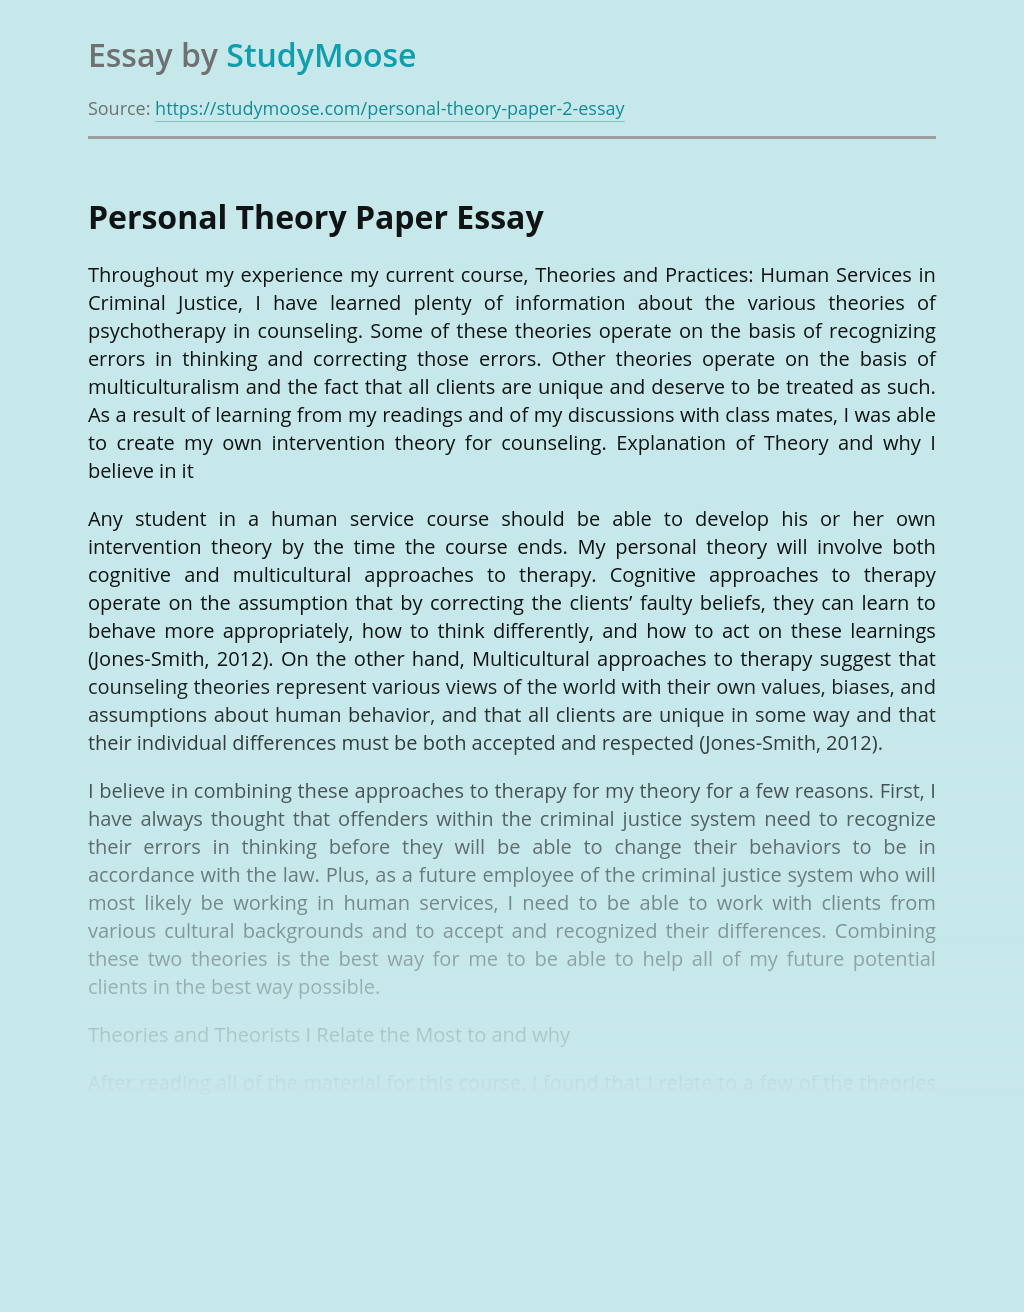 Personal Theory Paper